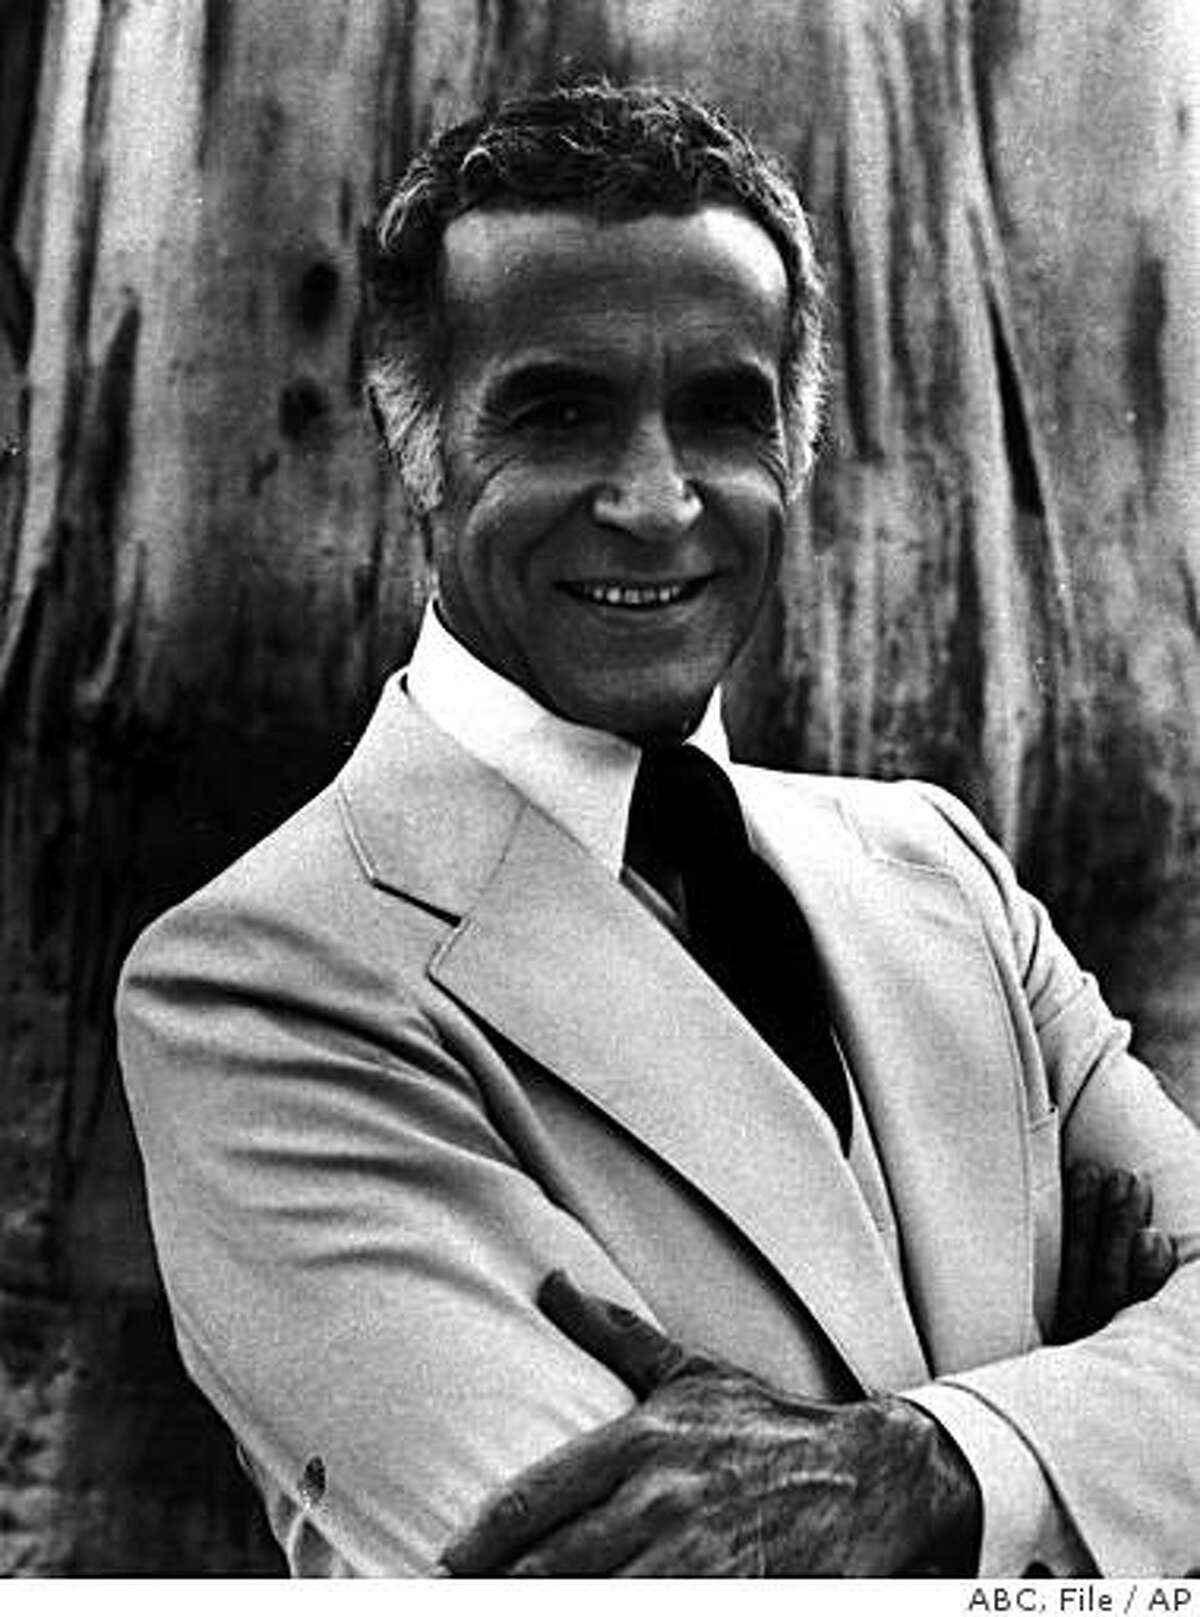 ** FILE ** In this 1977 file image originally released by ABC, actor Ricardo Montalban is shown in character on